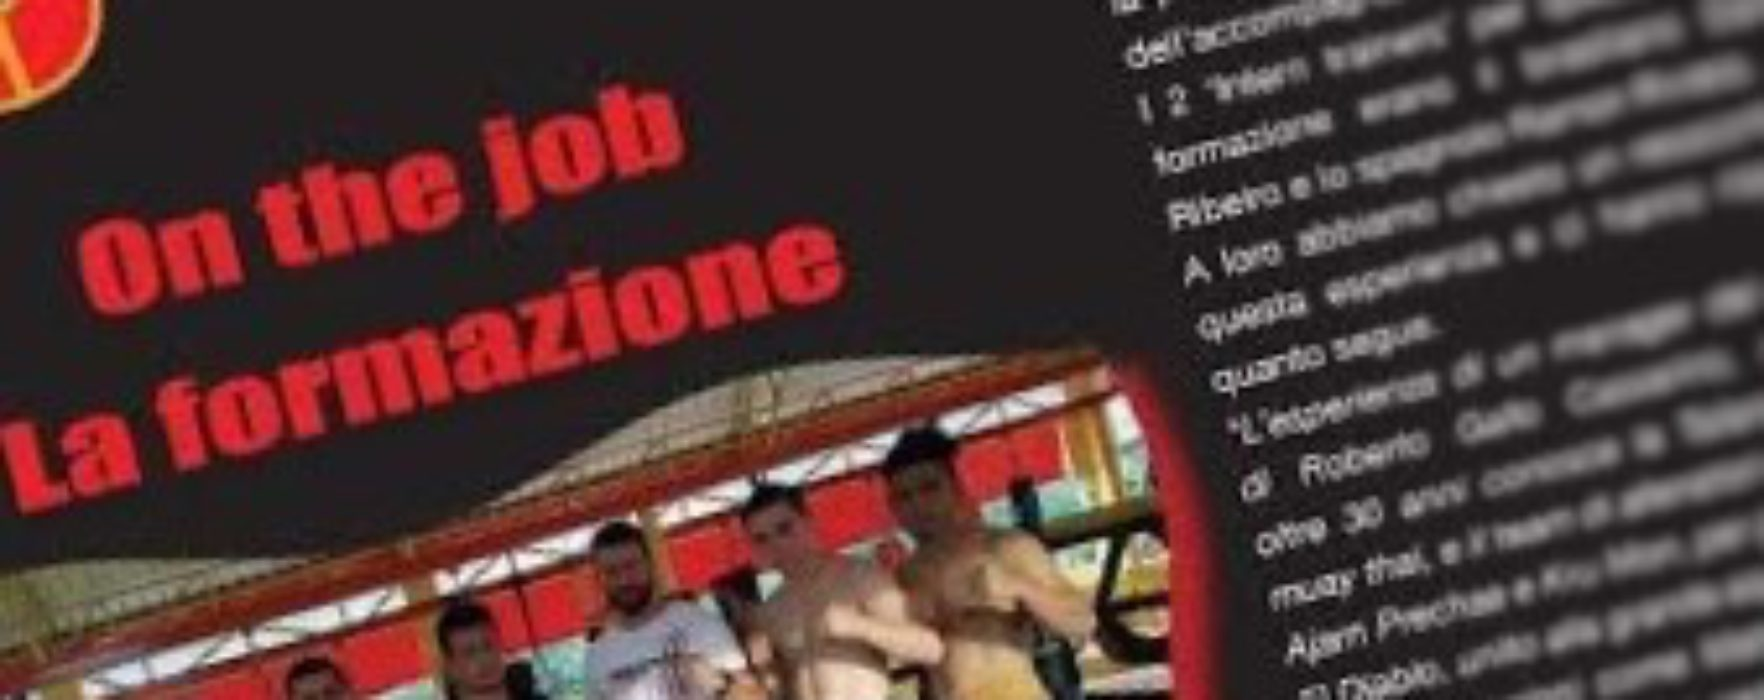 "Courses for Muay Thai trainers in Thailand on italian magazine ""Samurai"" (November)"